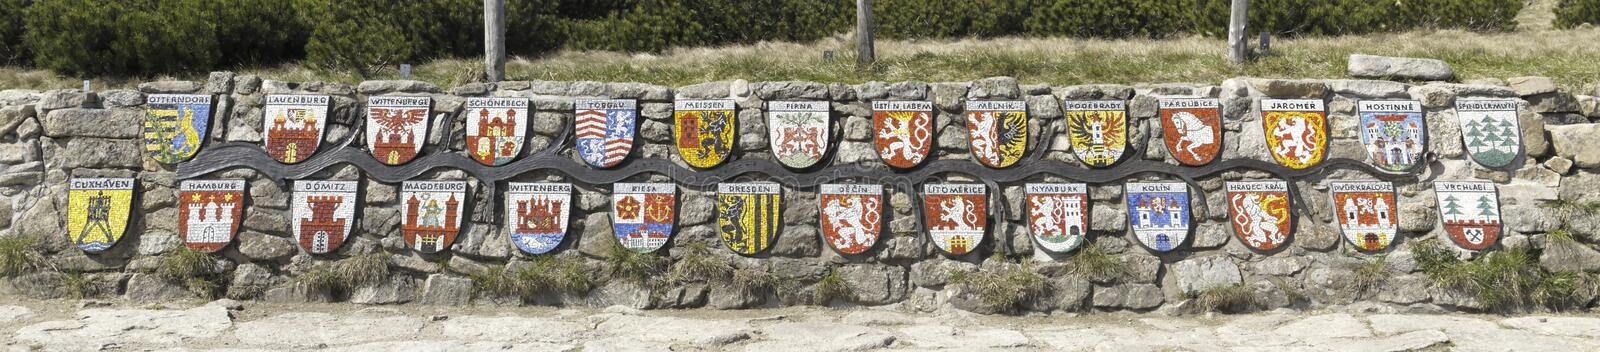 Download Emblems Of Towns Along Labe River Stock Image - Image: 19839569